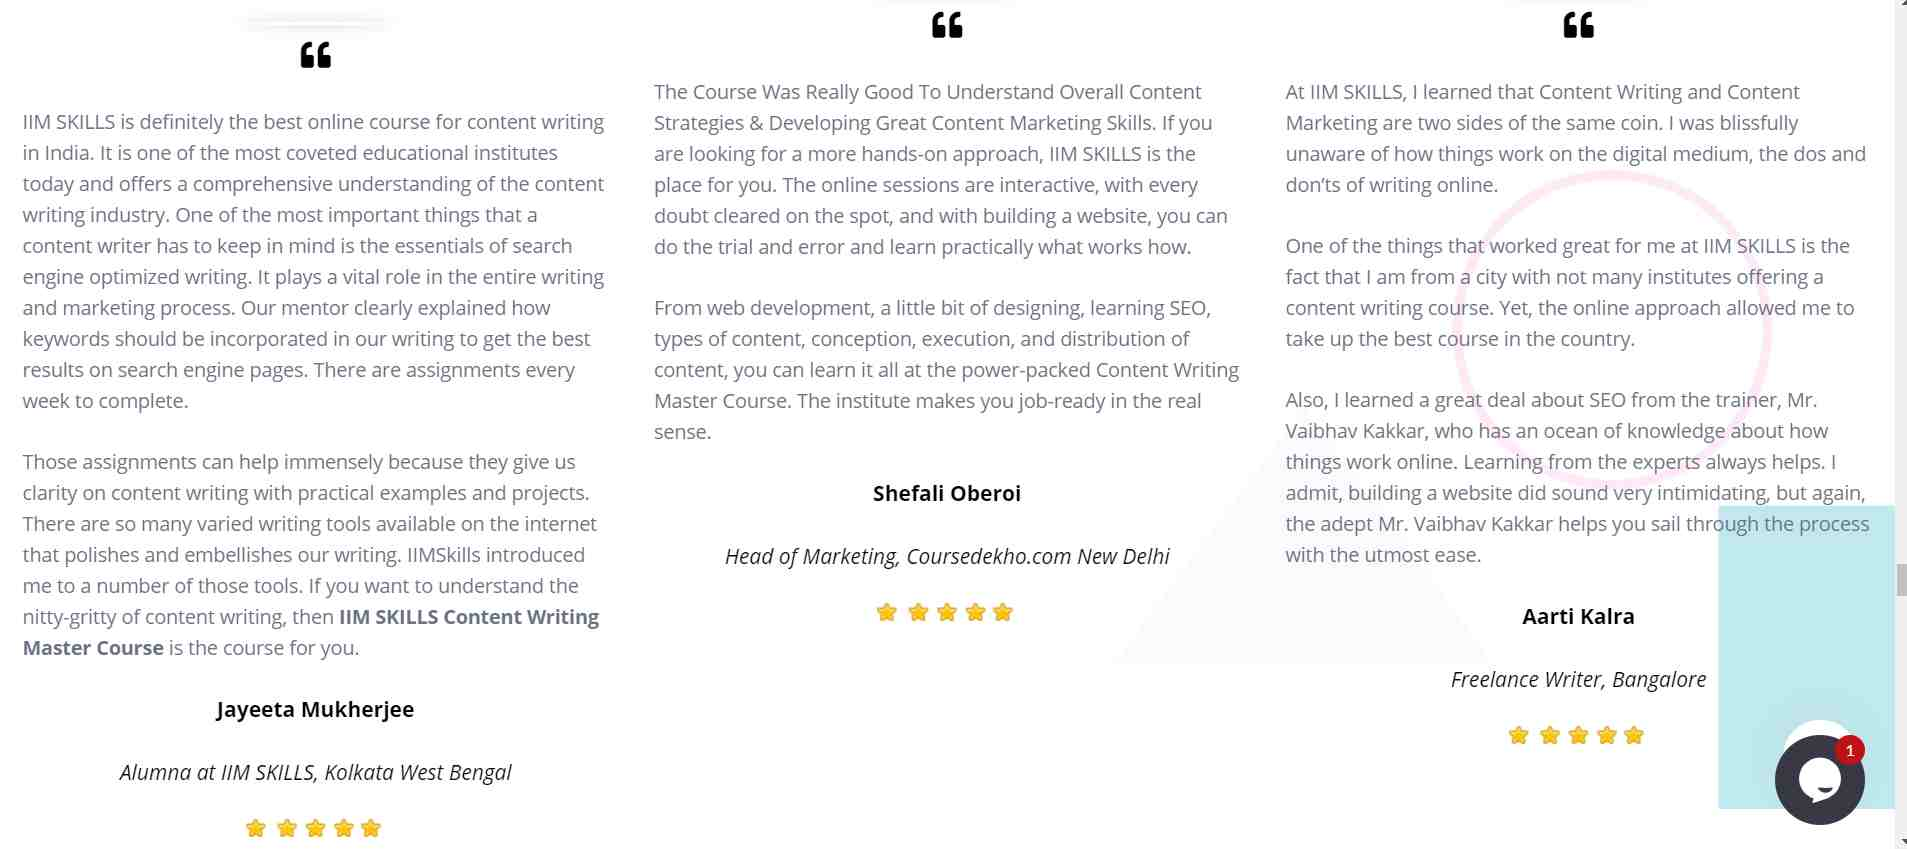 IIM Skills content writing course reviews and testimonials